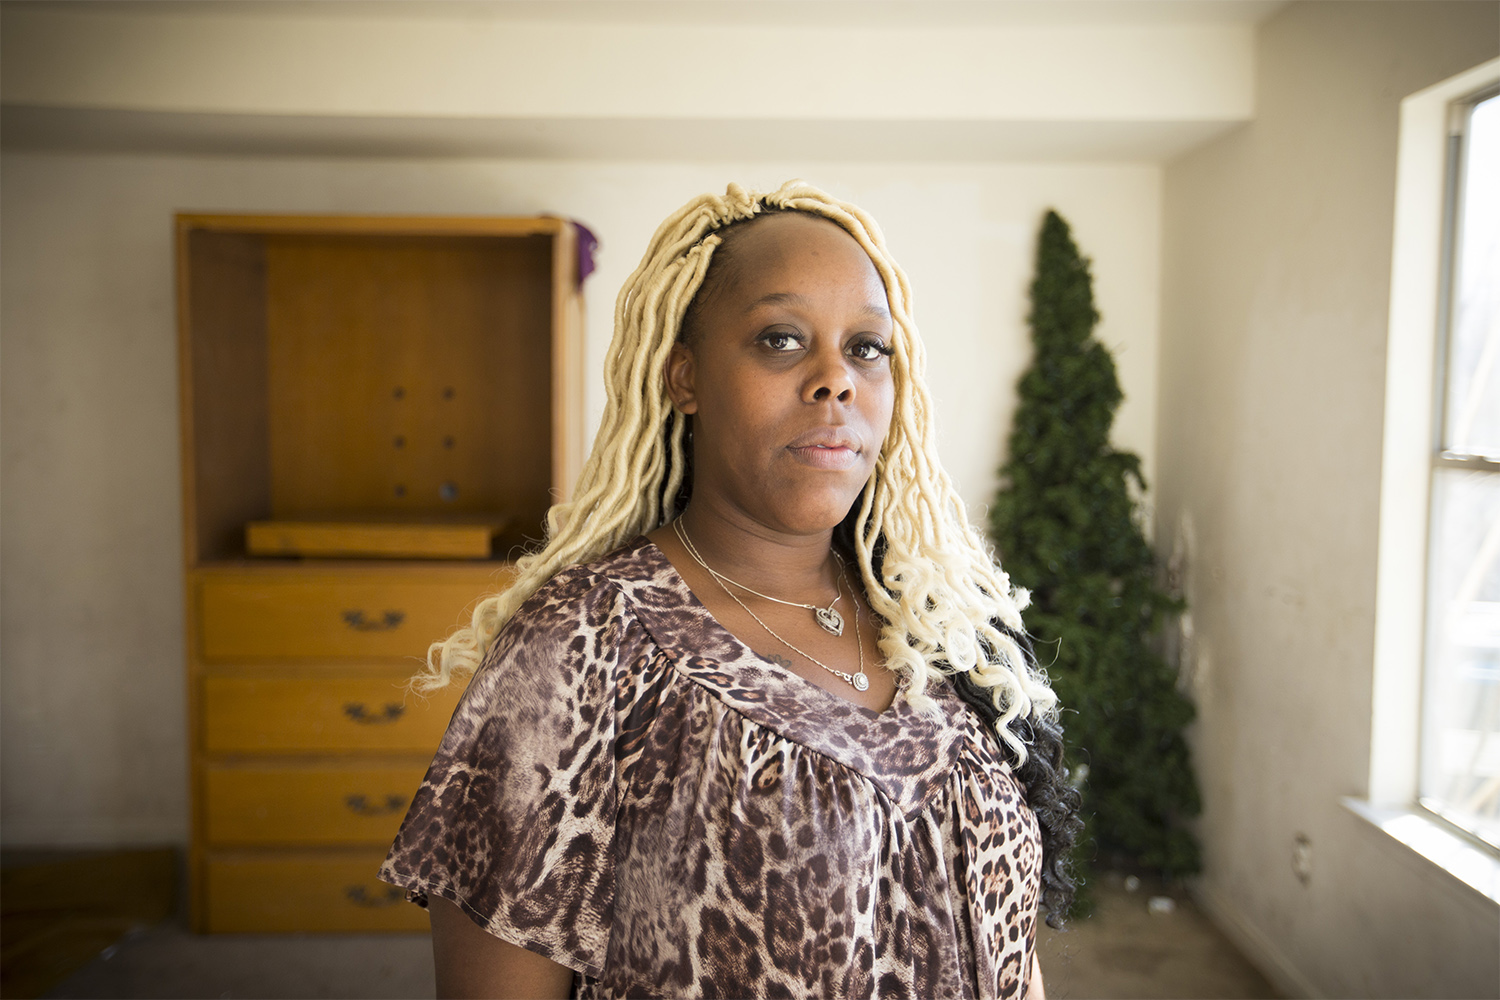 Ikeyraura Shorts at her home in Houston. She says her 16-year-old son was locked up for more than two weeks in Harris County's juvenile detention center after he got into a fight at school.